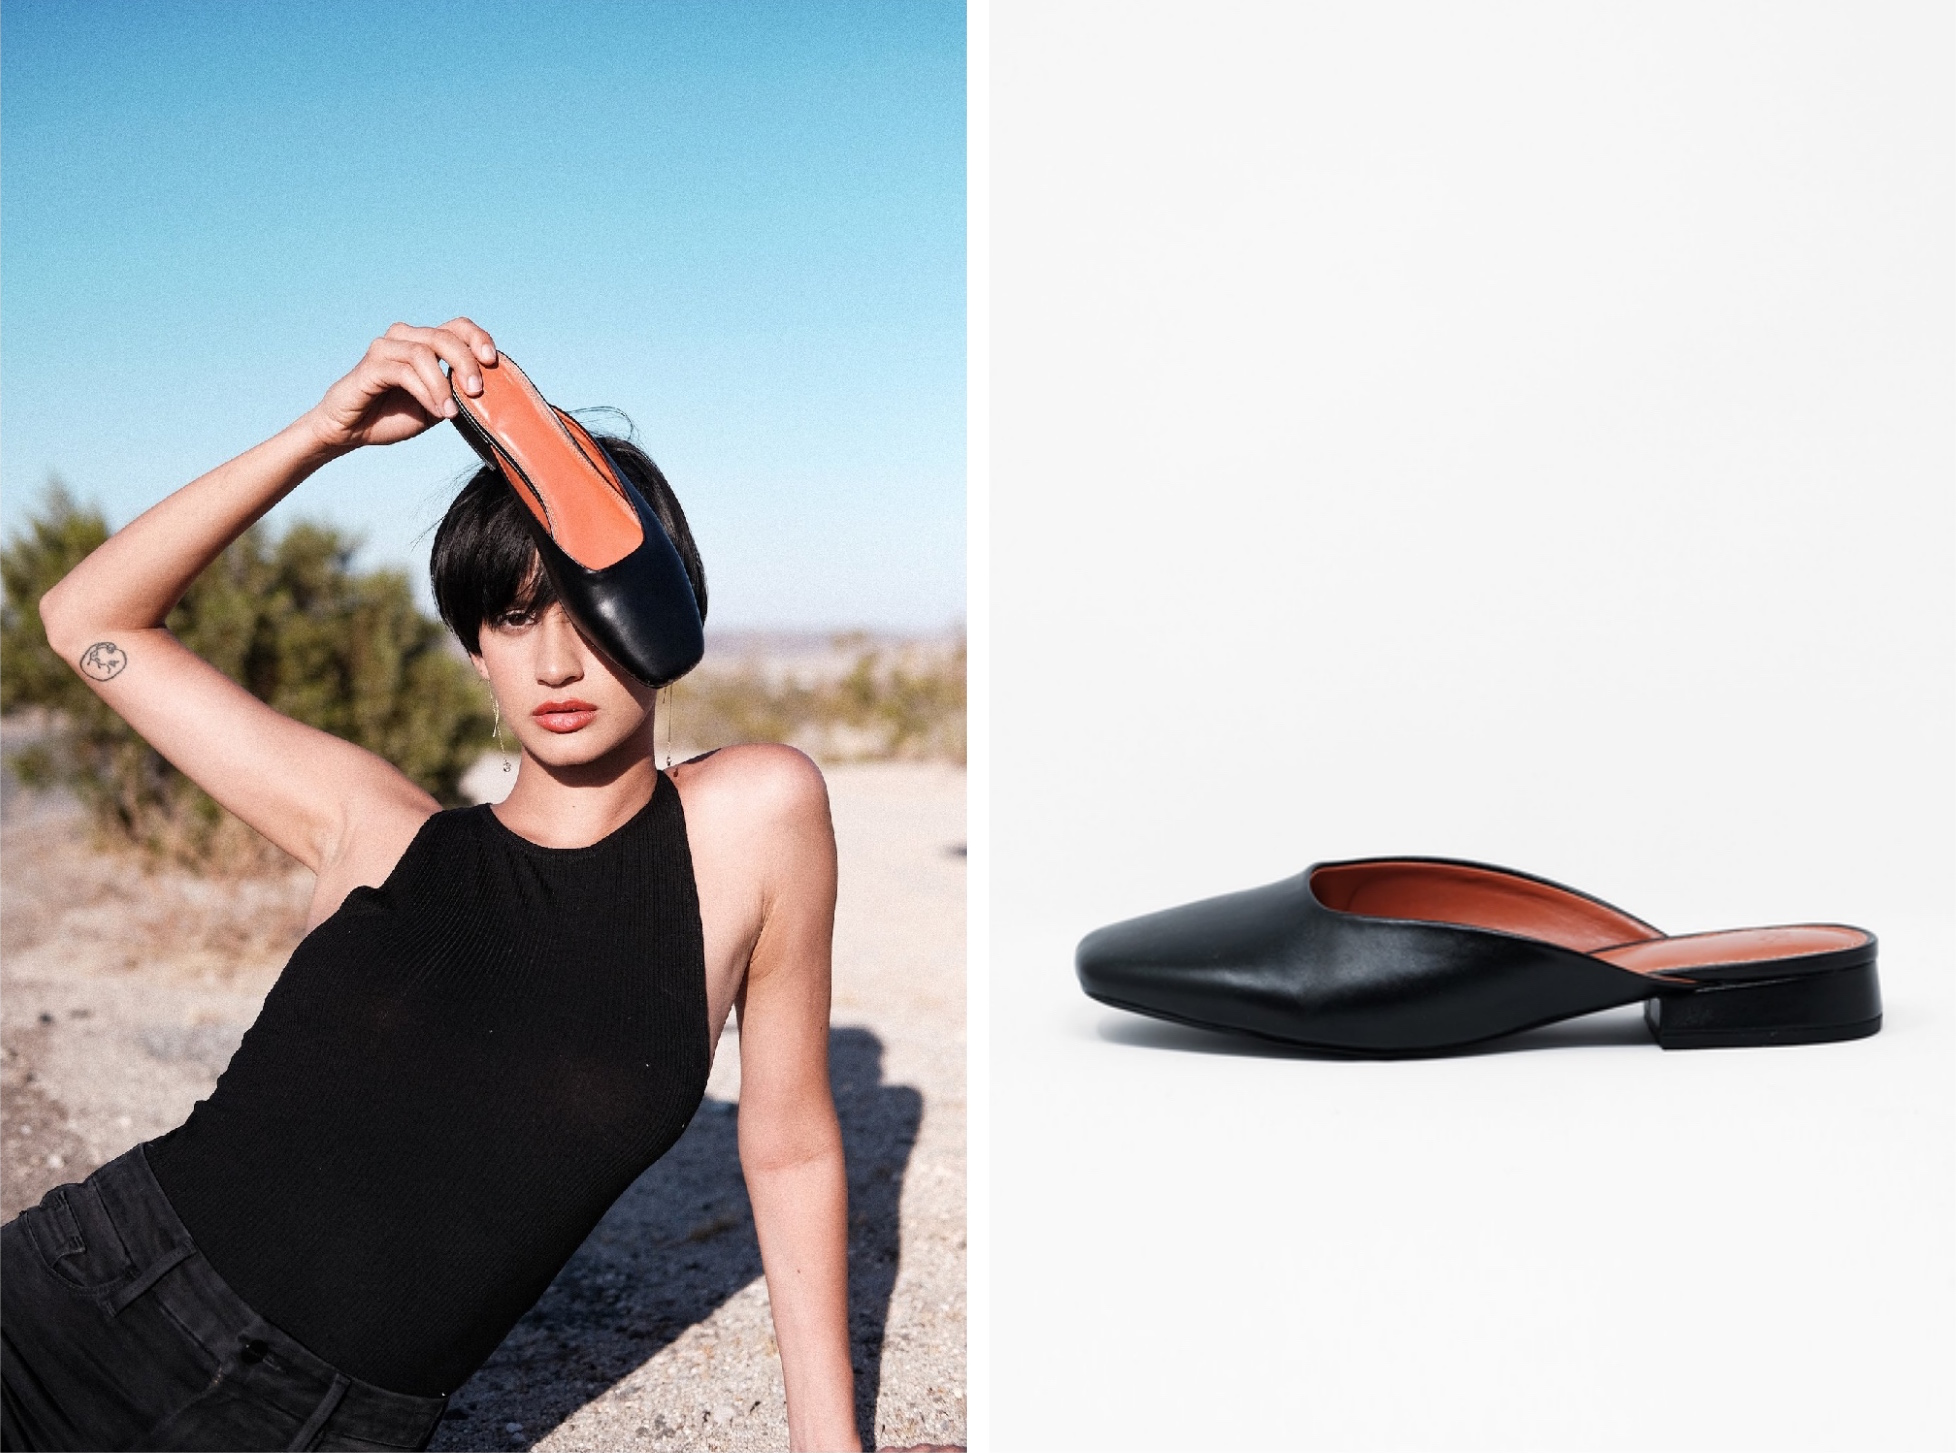 dfbbeb28b4b 14 Brands With Vegan Shoes Everyone Should Know